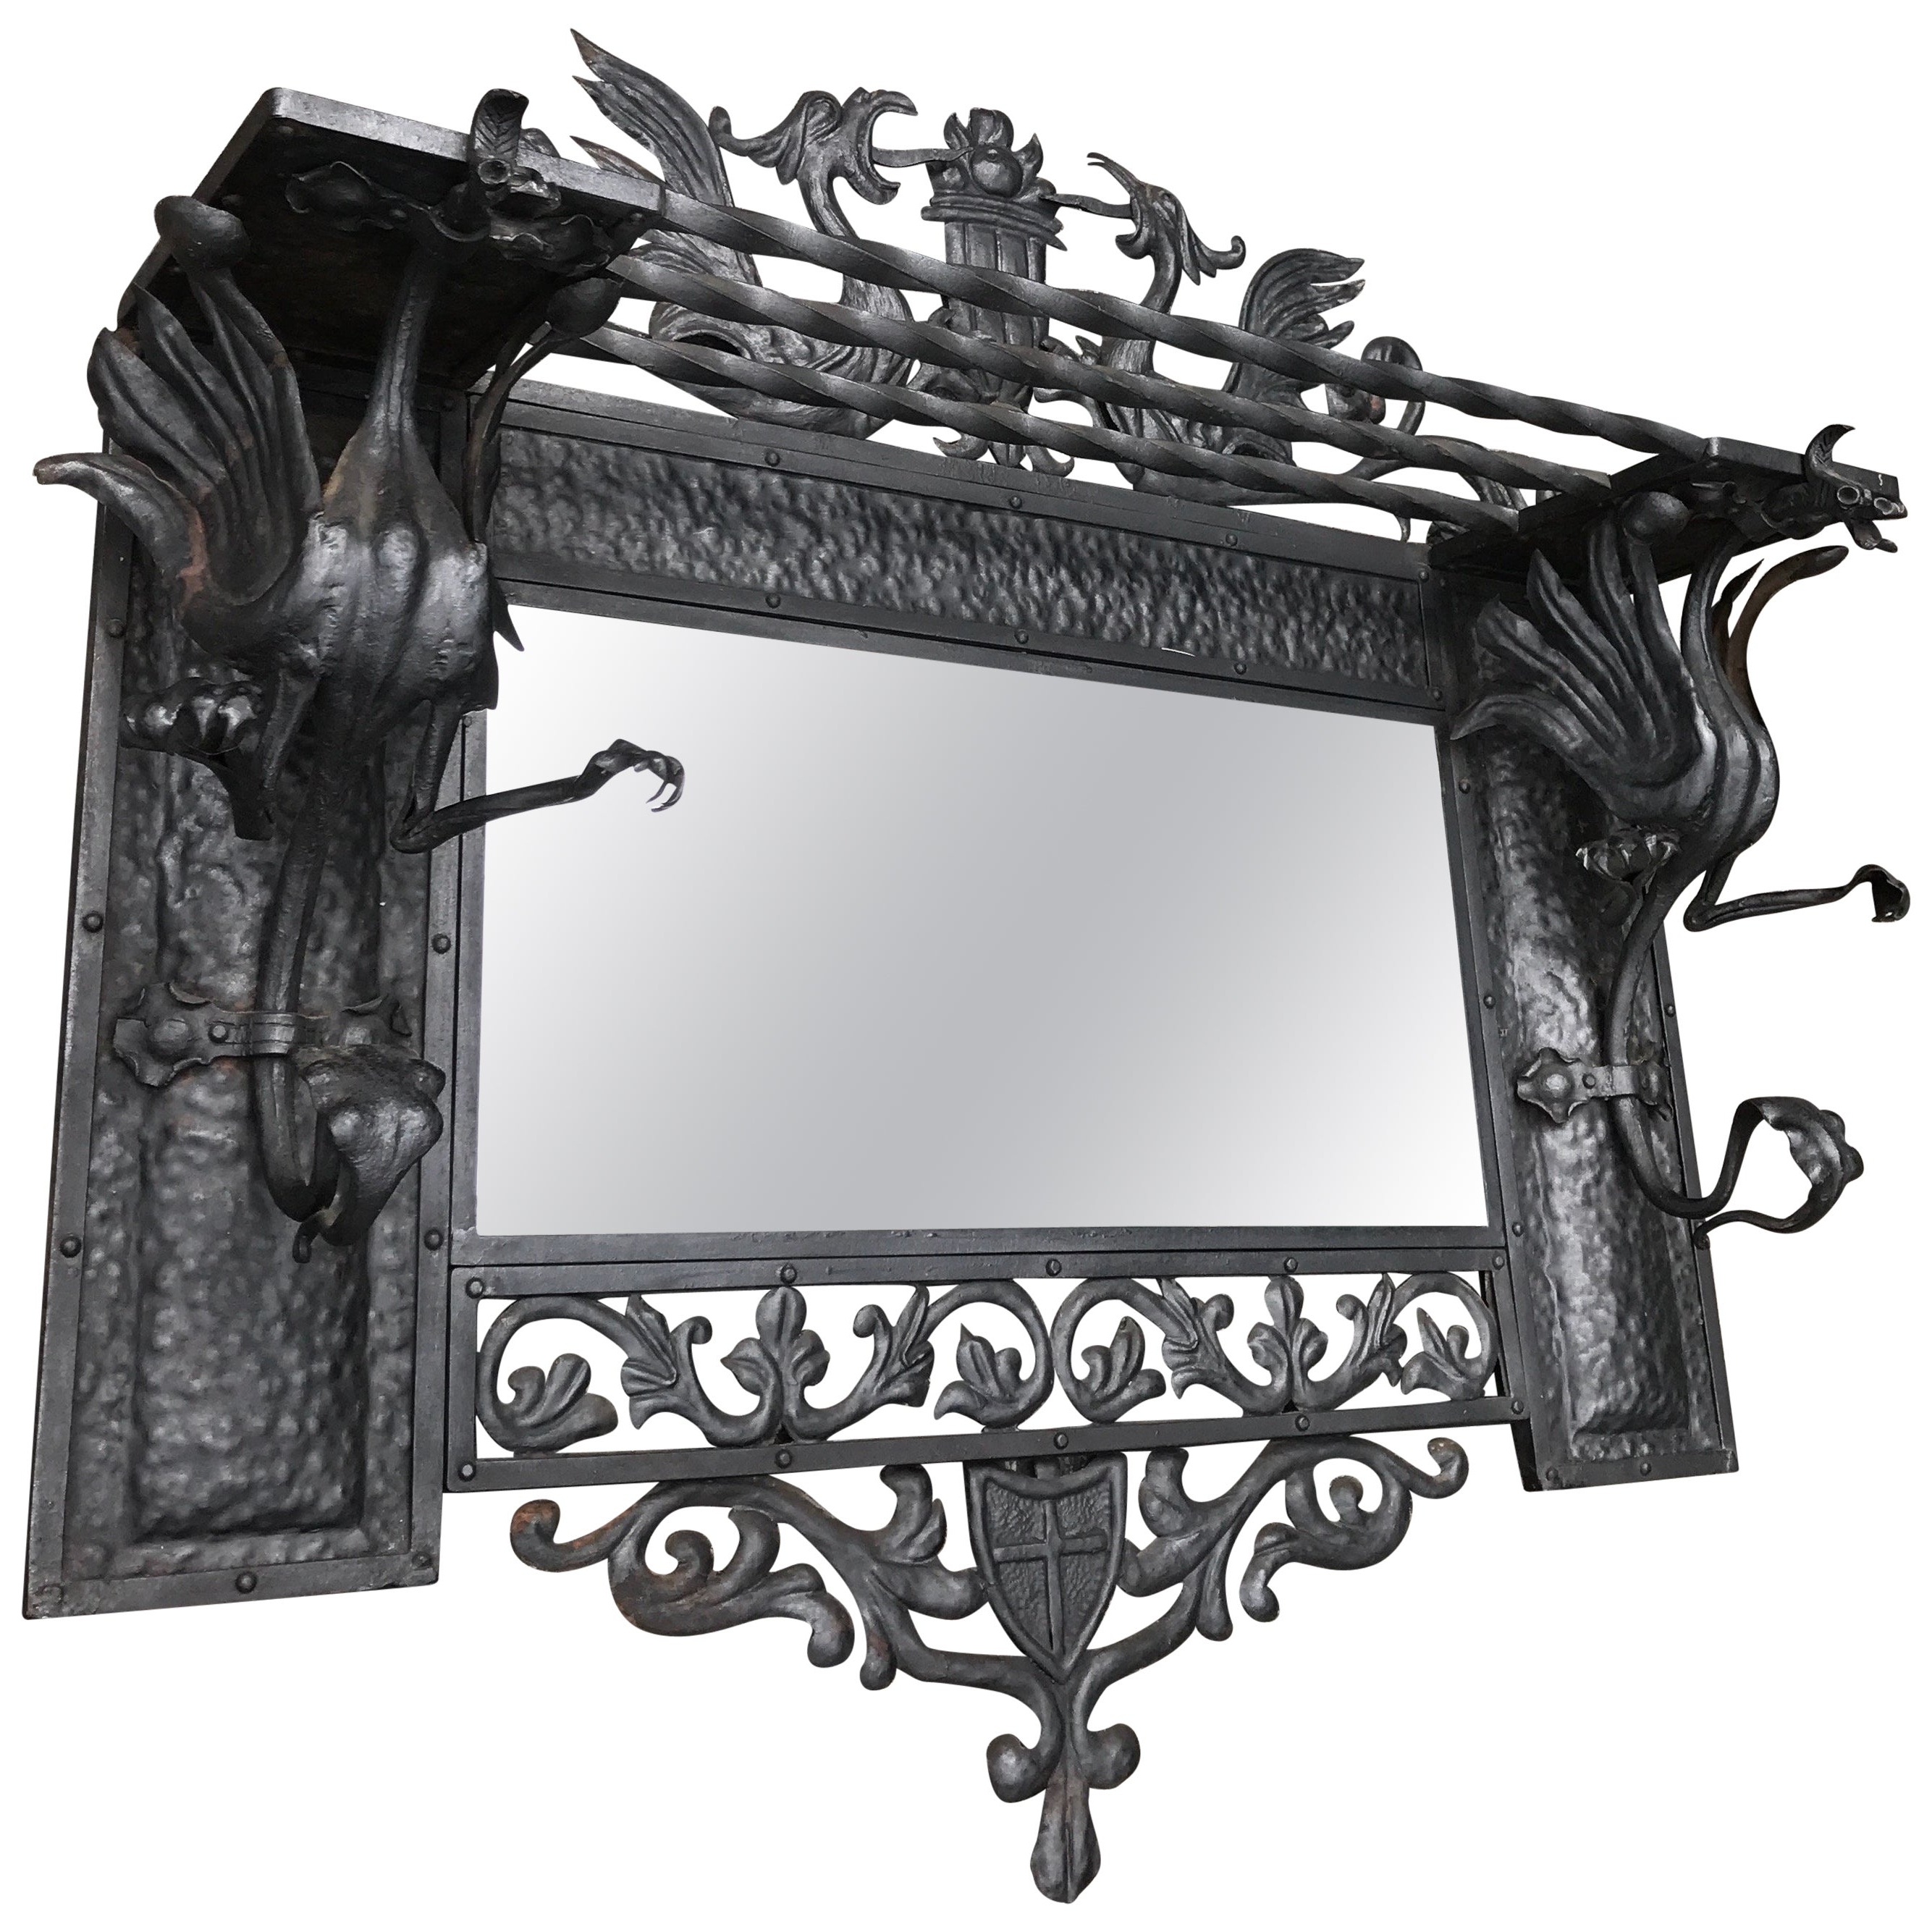 Newest Stunning Arts And Crafts Wrought Iron Art Wall Coat Rack / Mirror With Dragons Throughout Coat Rack Wall Mirrors (Gallery 11 of 20)